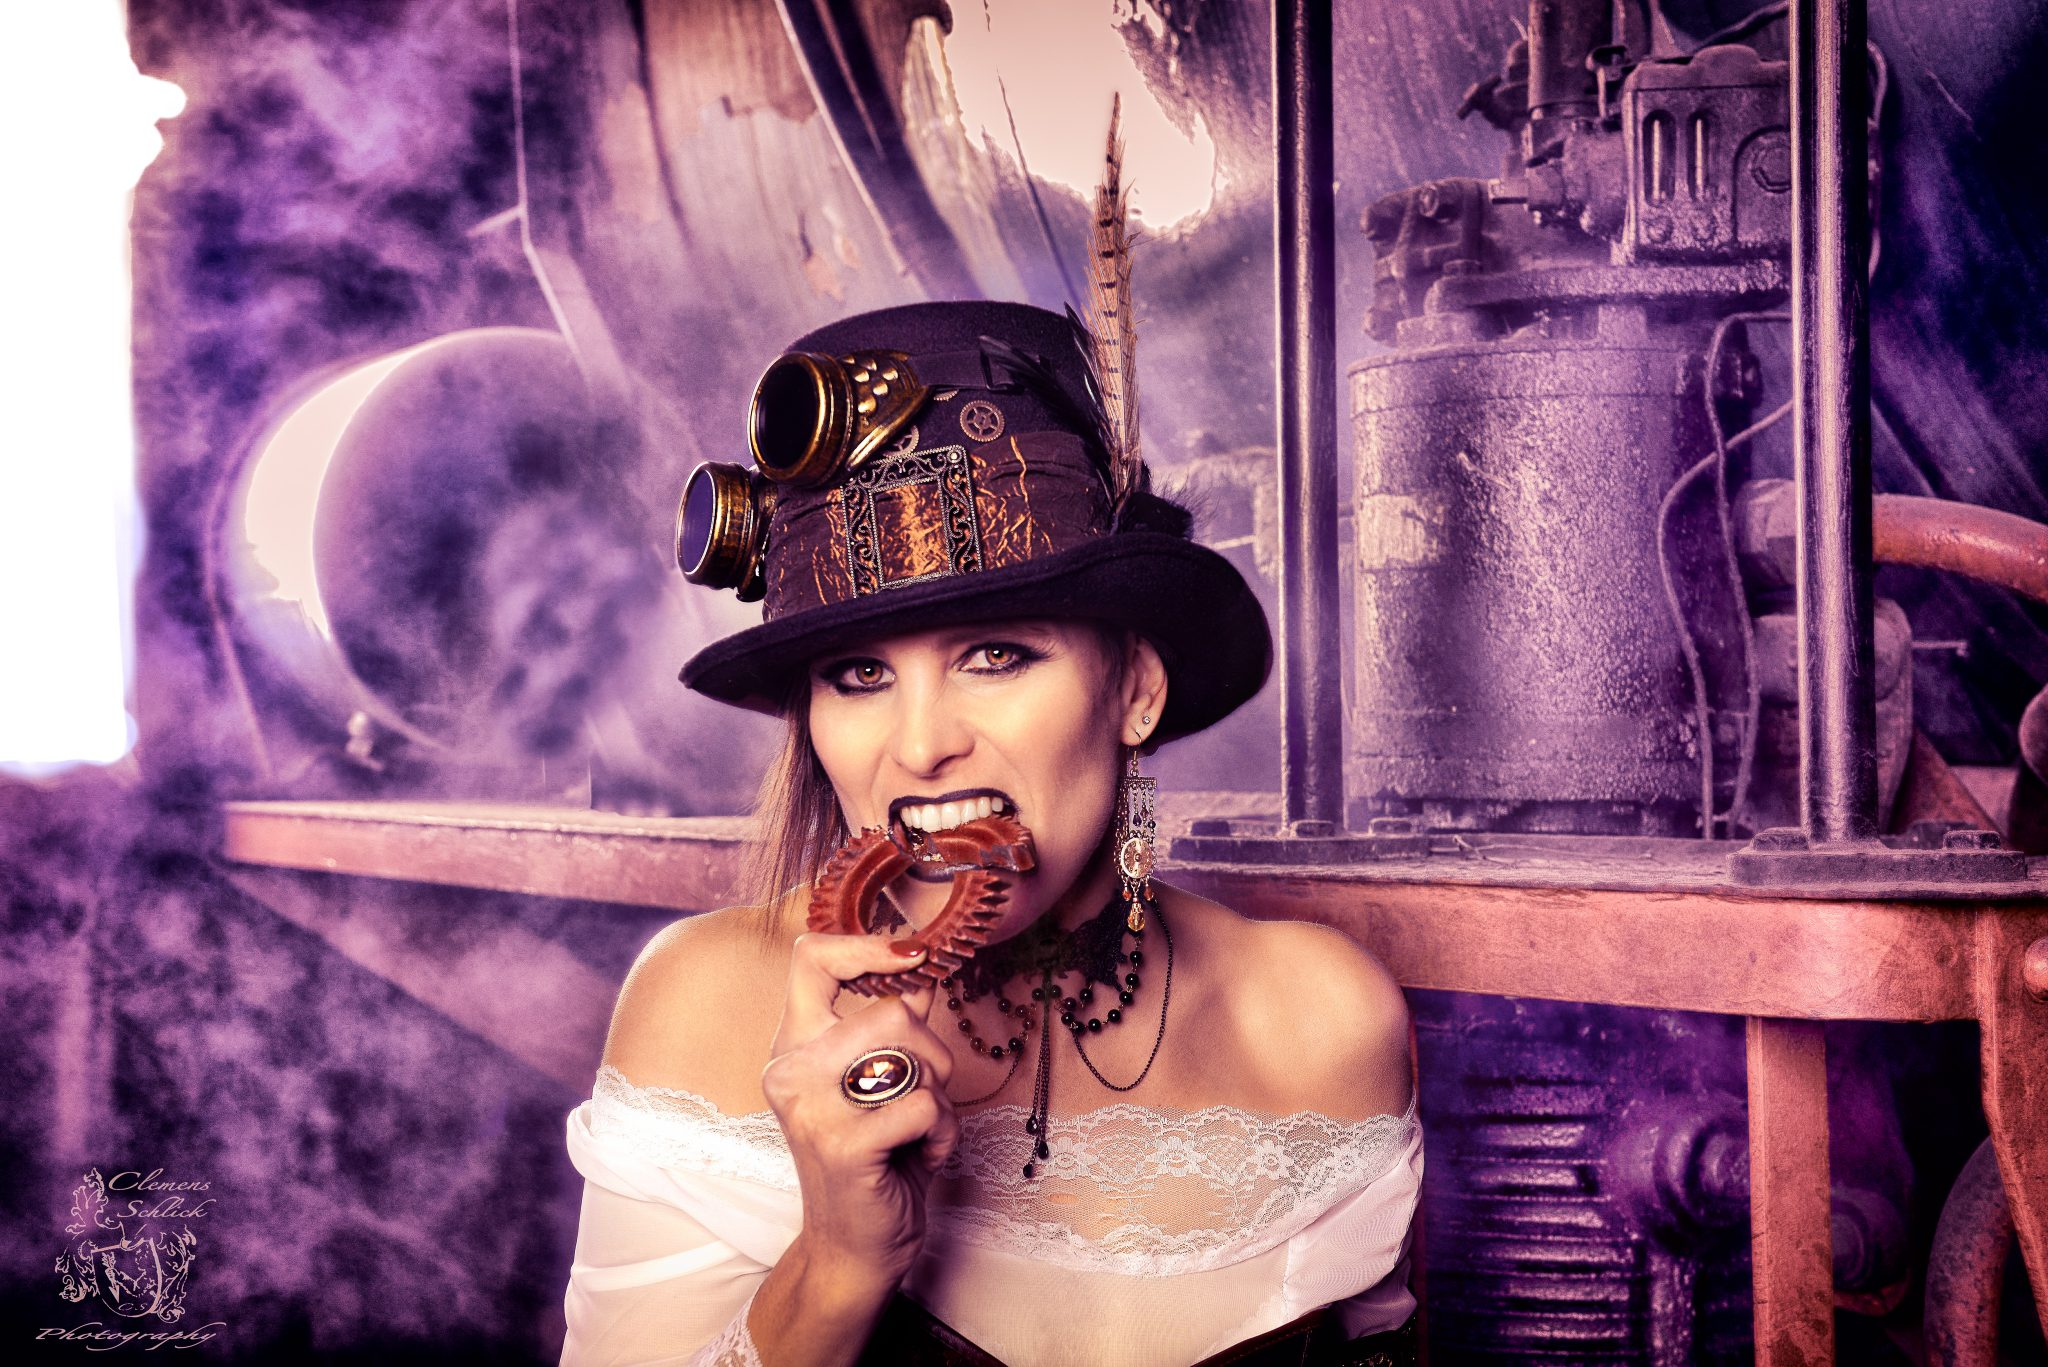 20141213-SteamPunk-CS5357E.jpg